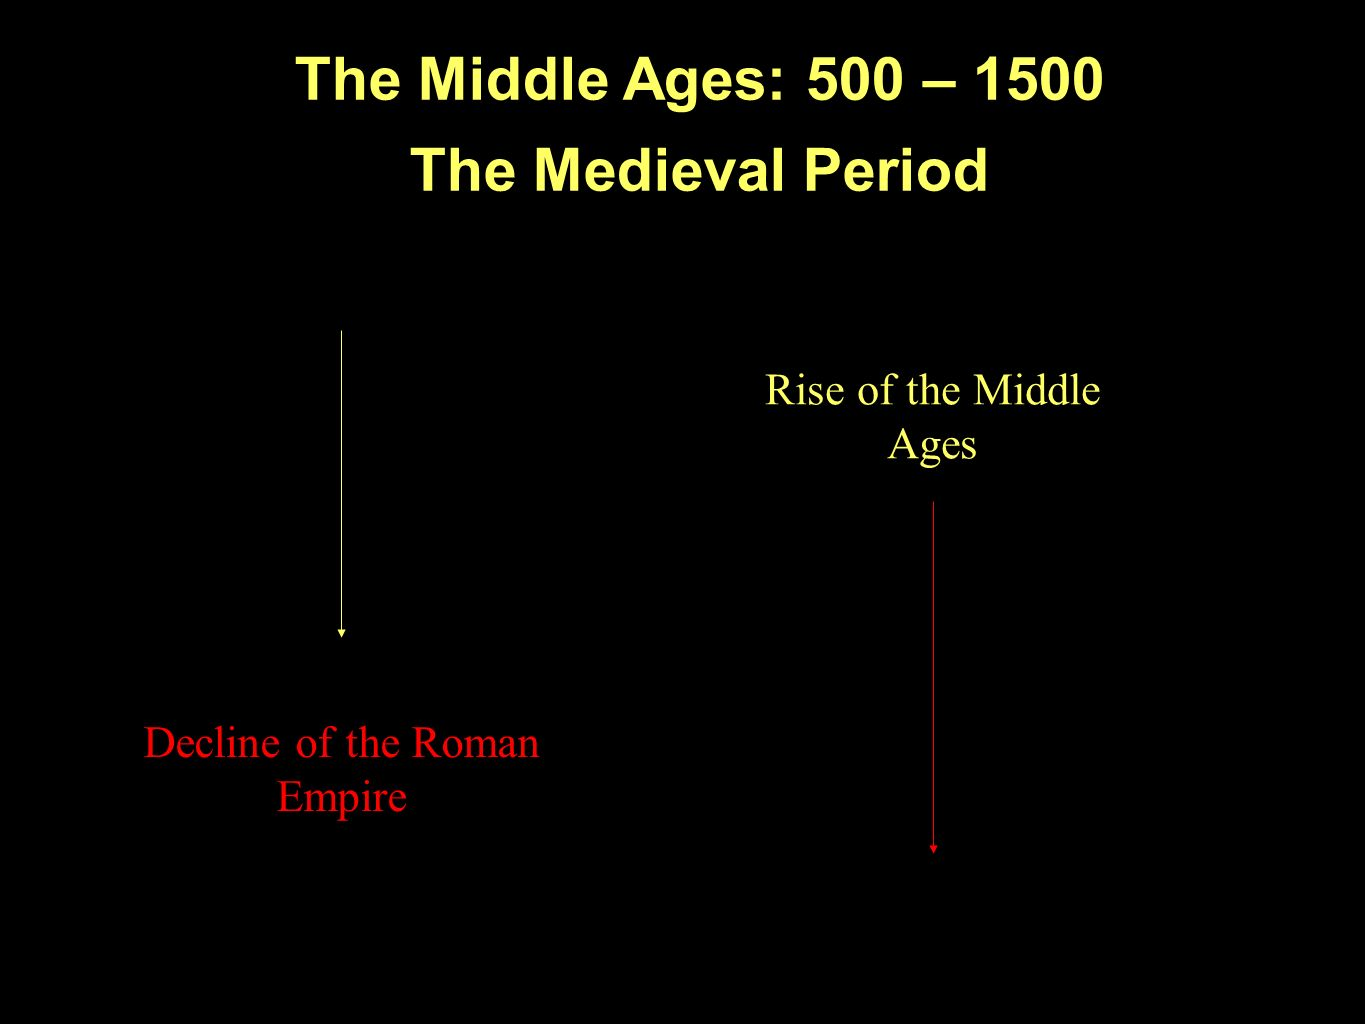 The Middle Ages: 500 – 1500 The Medieval Period Rise of the Middle Ages Decline of the Roman Empire